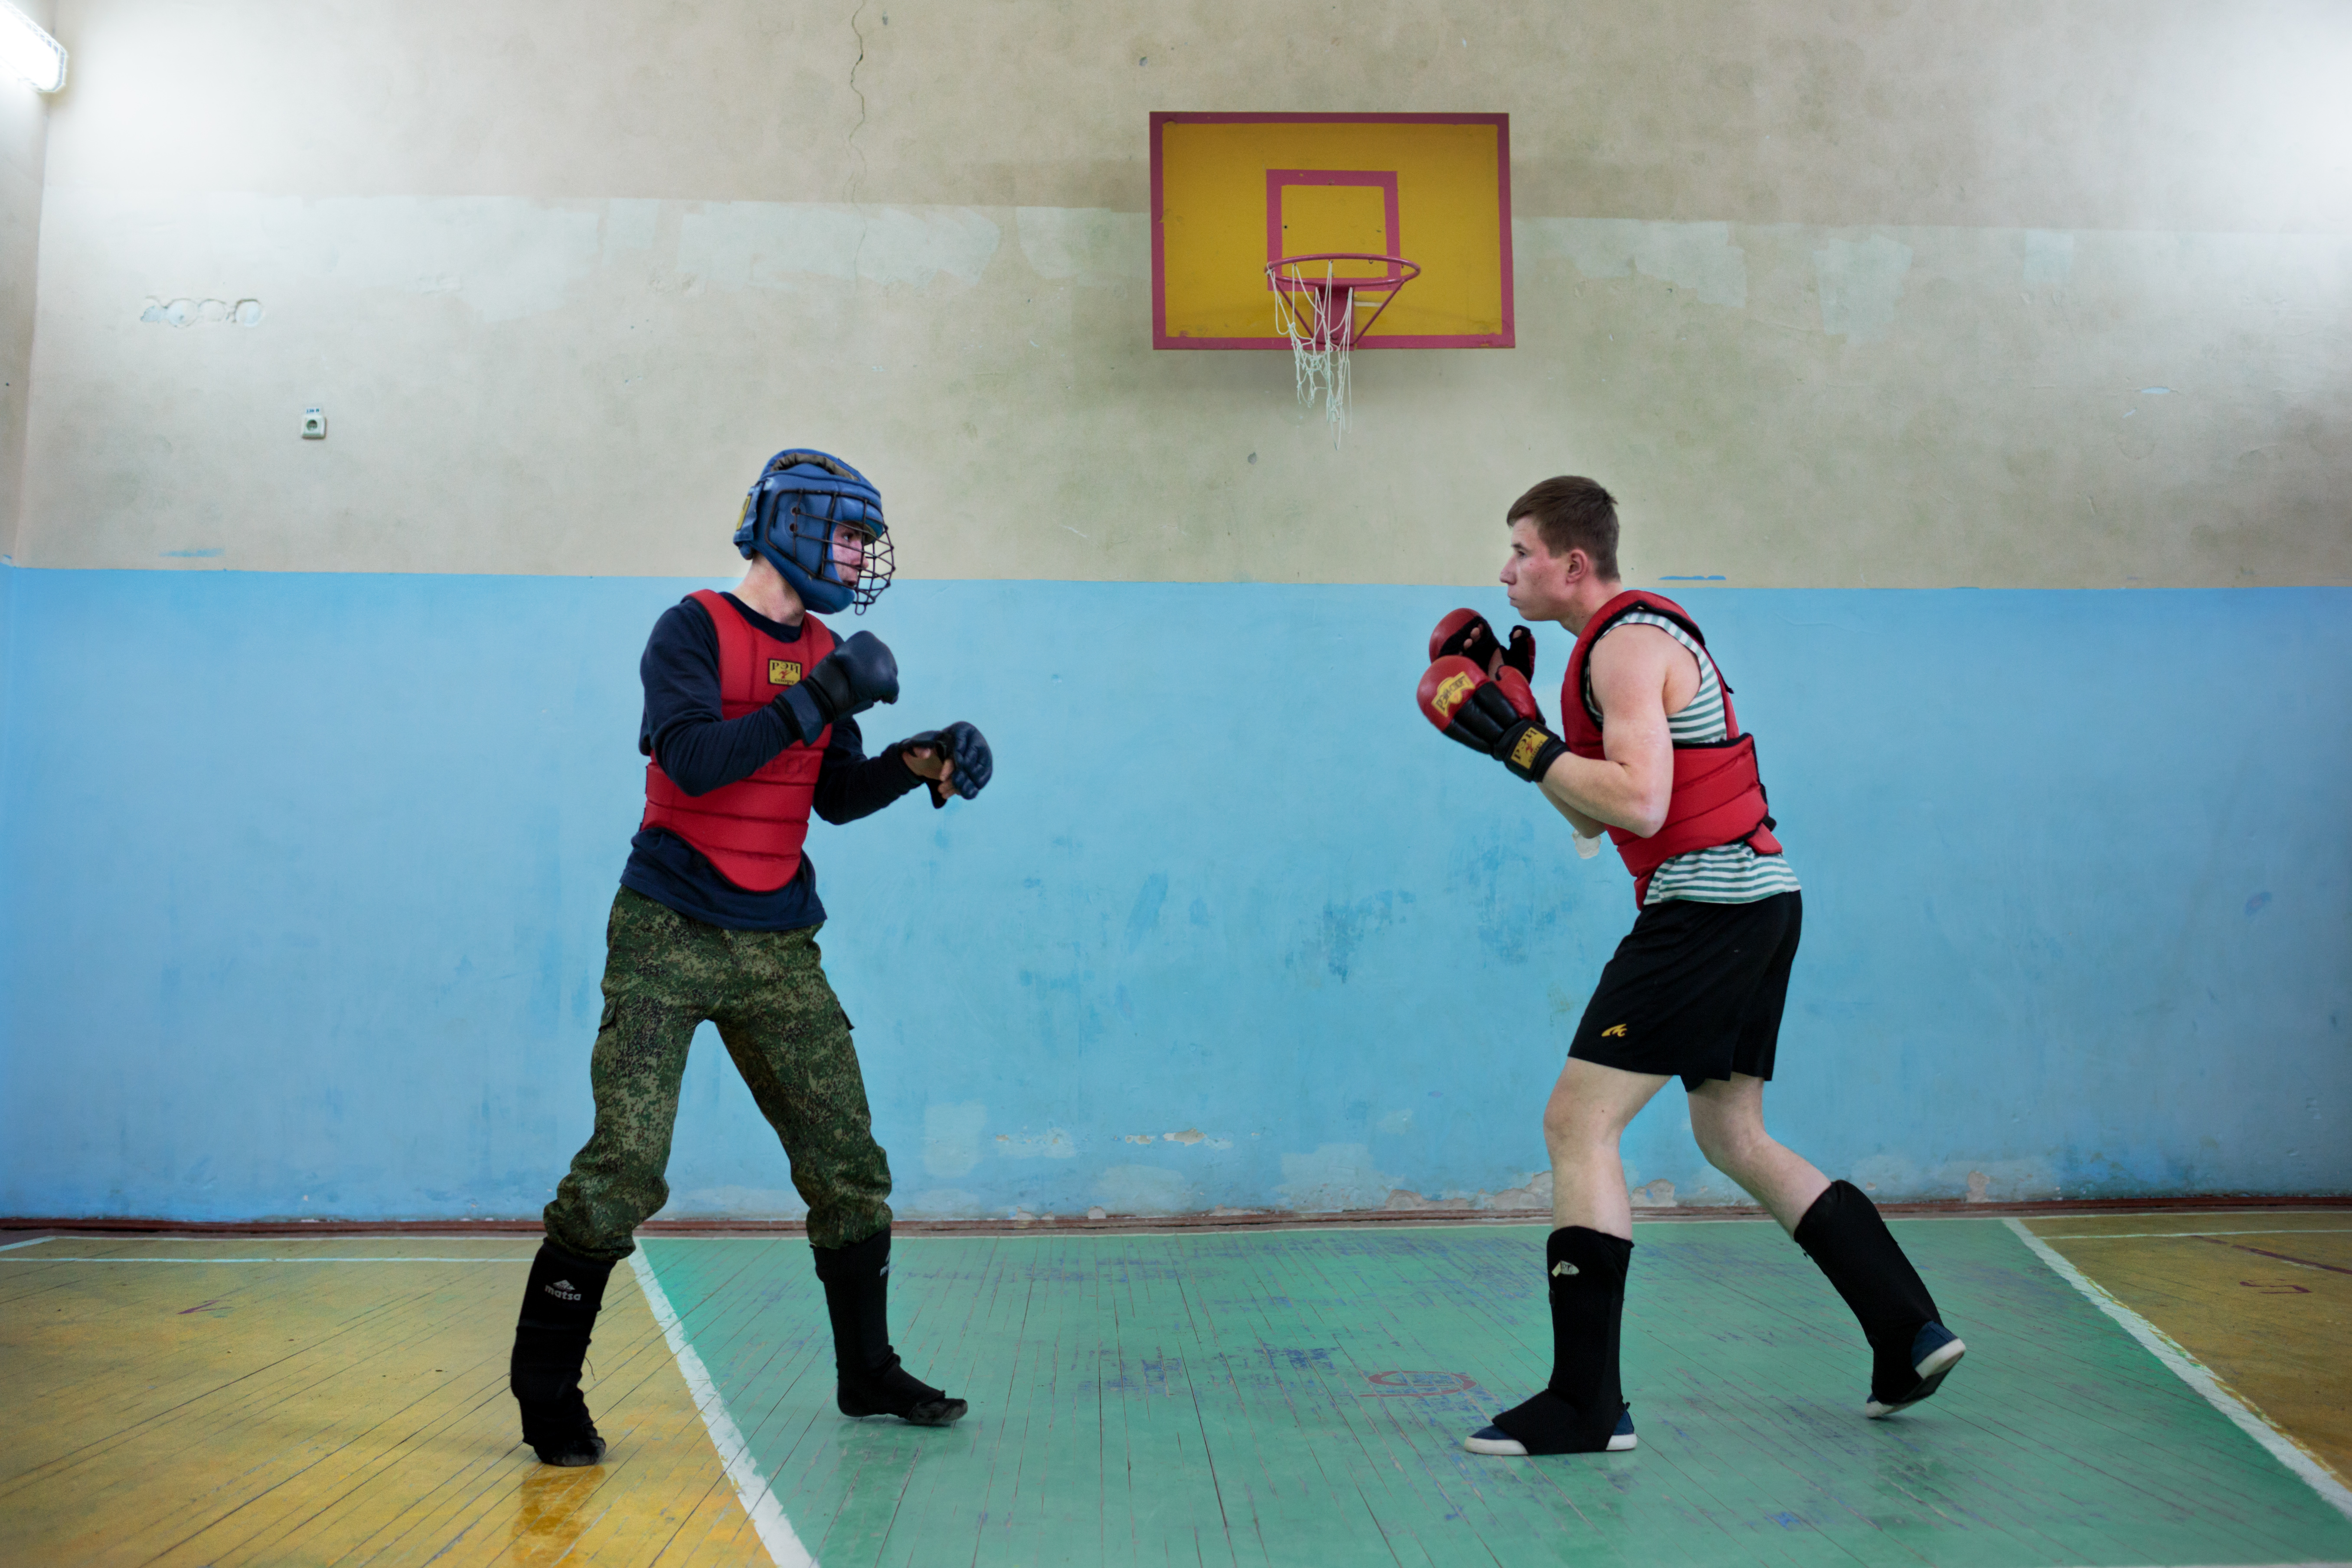 Students practice boxing and martial arts after school at the Diveevo Public School gymnasium on Apr. 6, 2016 in Diveevo, Russia.